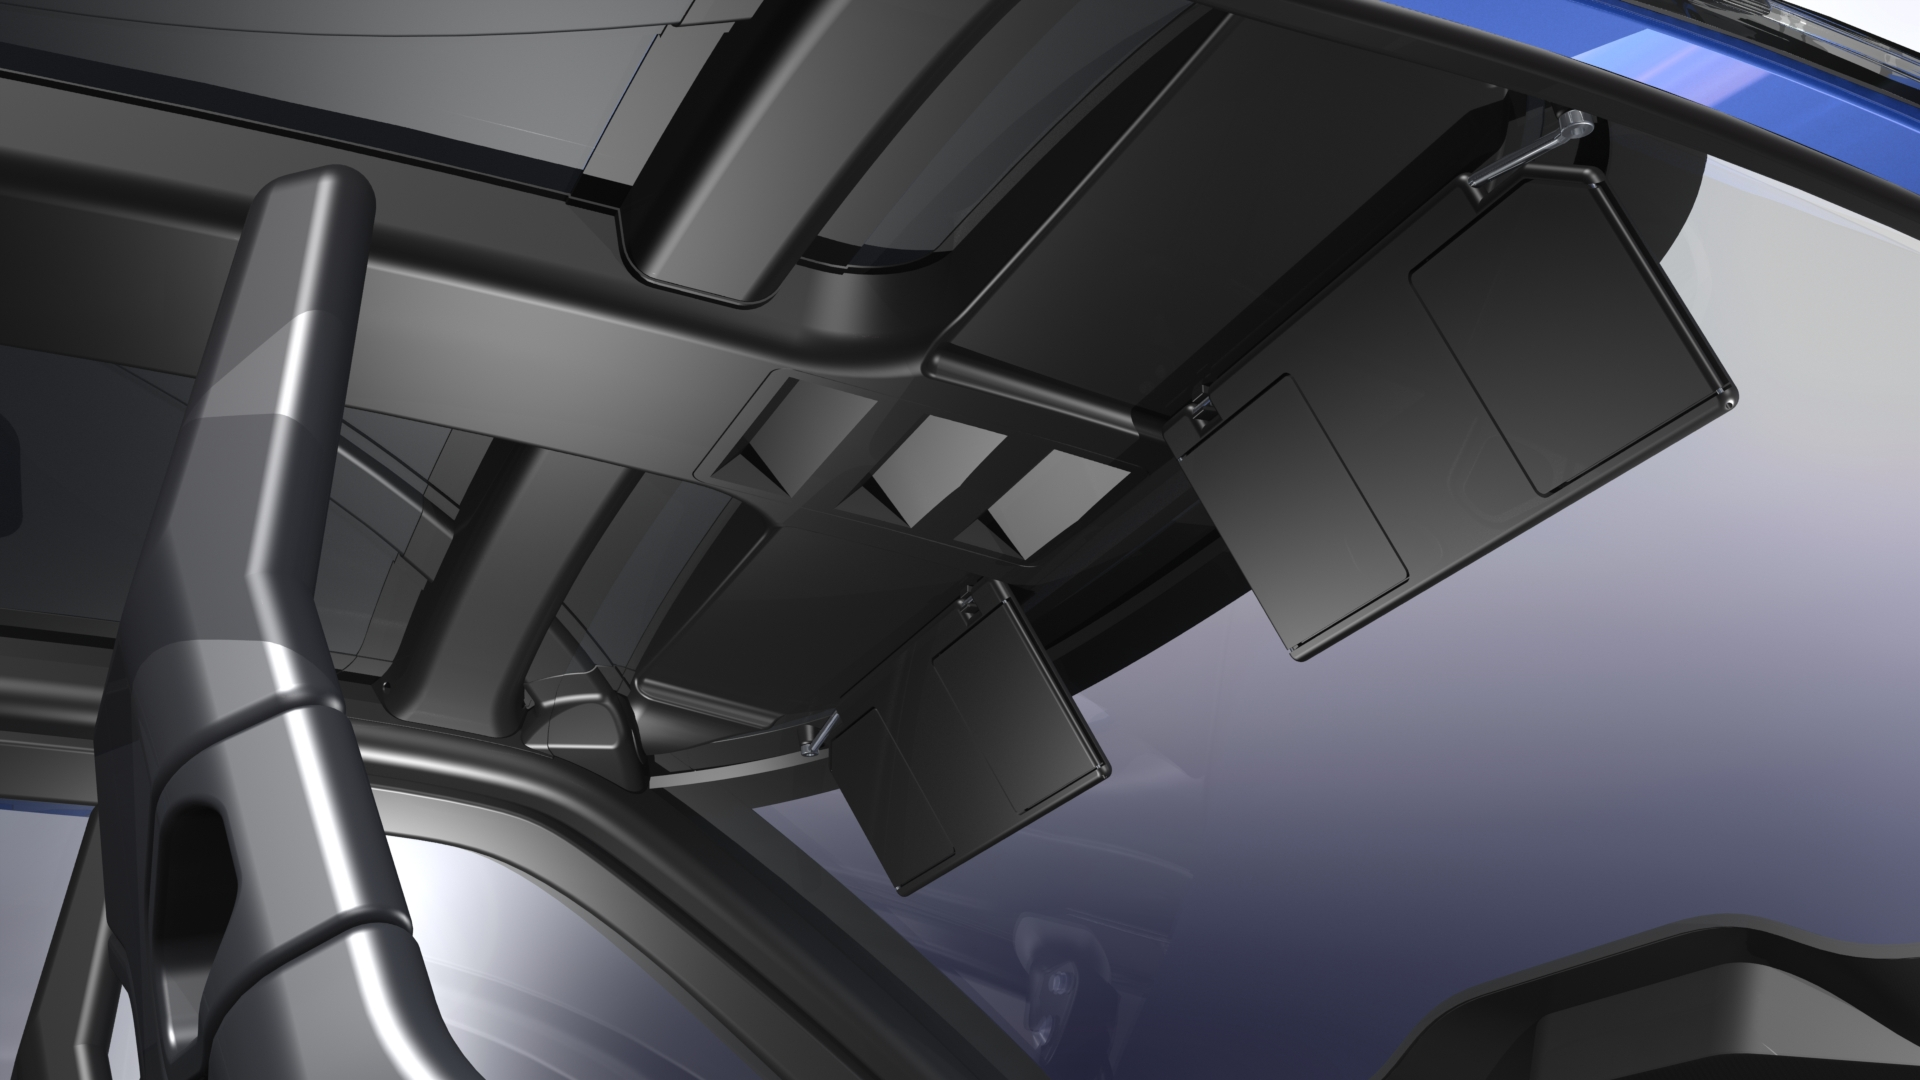 The visors tilt down and out just like any standard automotive visor. We  also plan to provide a vanity mirror and small light in the center of each  visor. 4bac8ee18b4